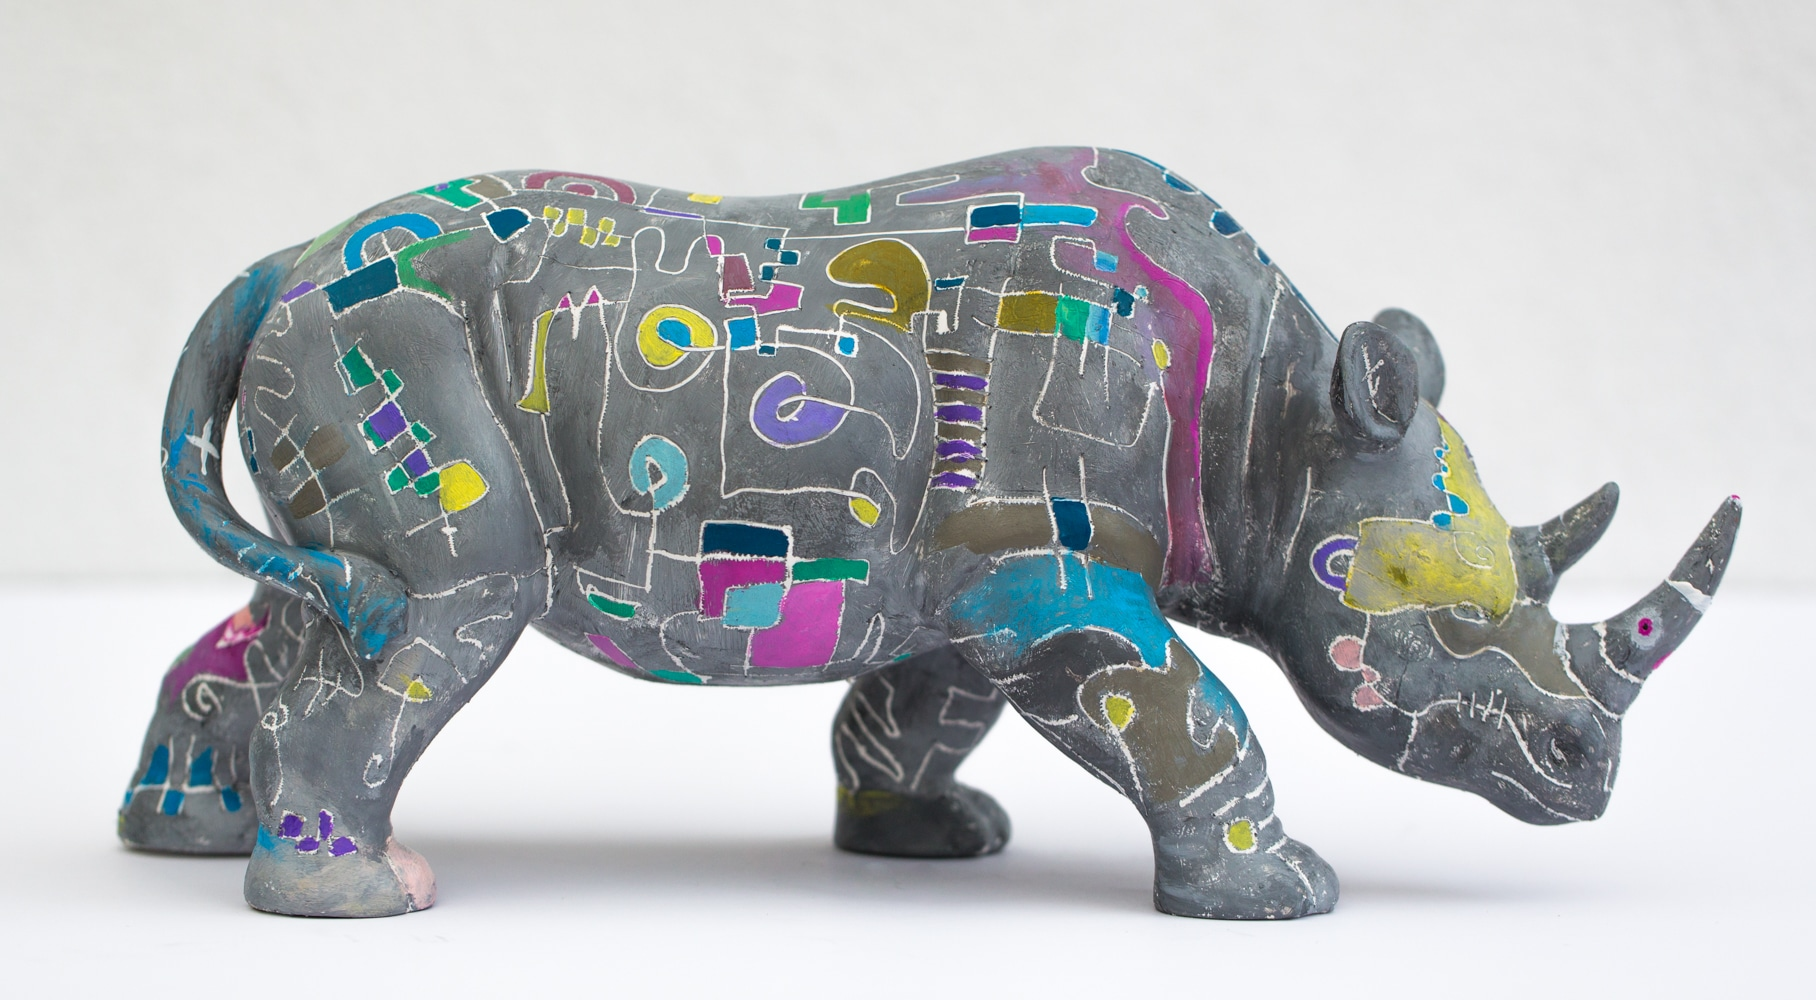 rhino_sculpture_by_gregory_beylerian_2